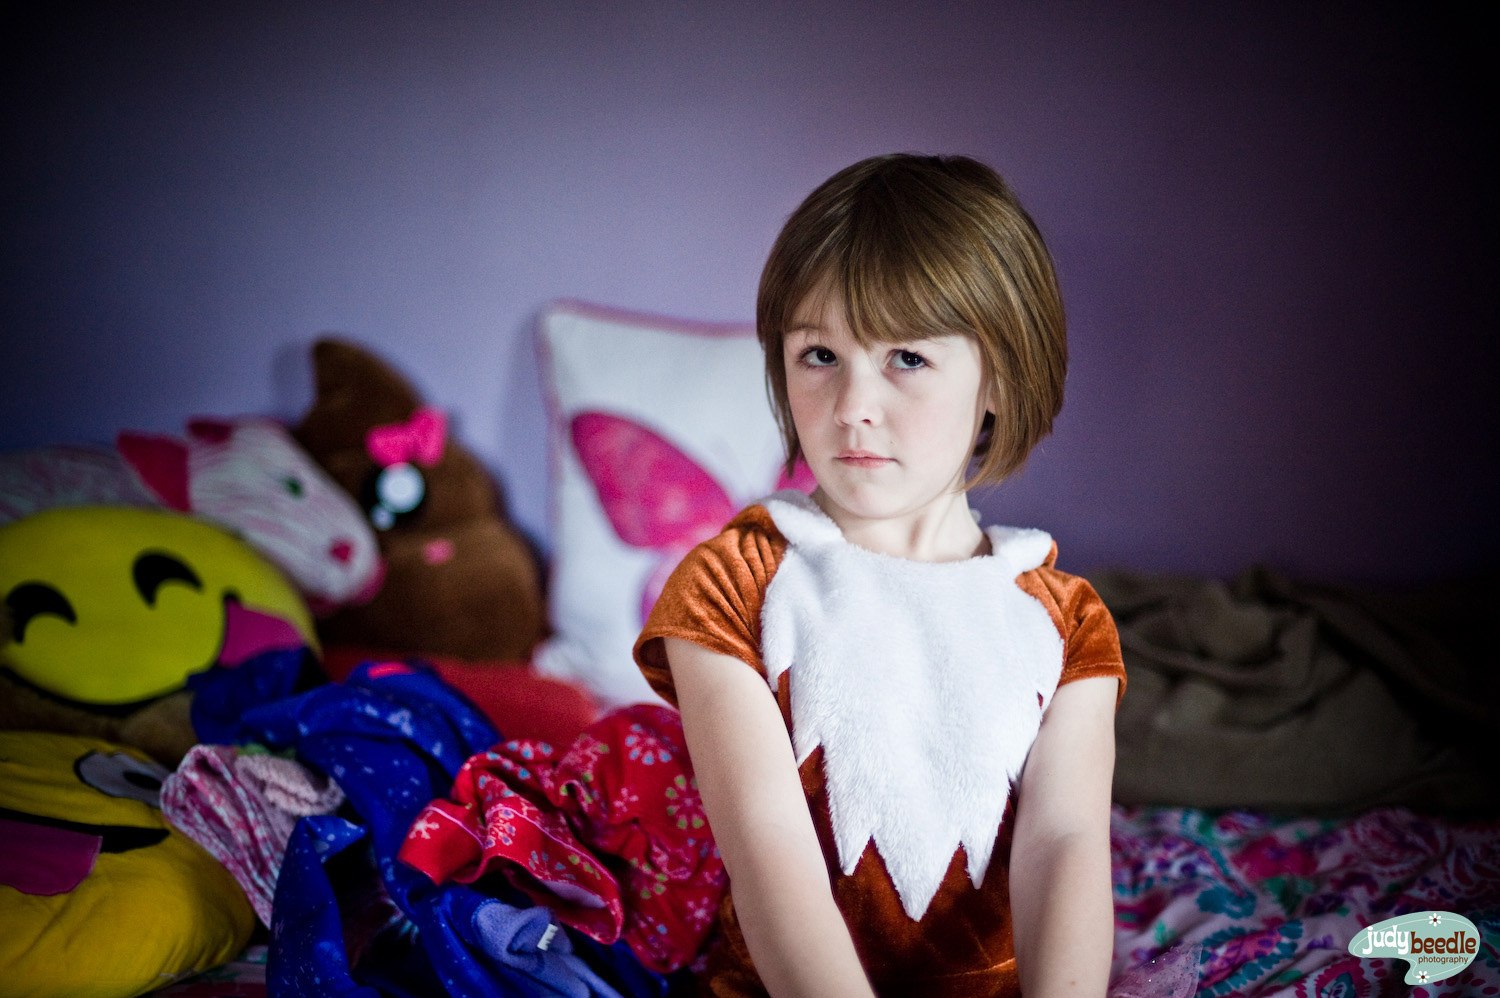 4/25 | She wanted me to come over to see what she was wearing to school the next day. It was this - a fox outfit. It has a tail.